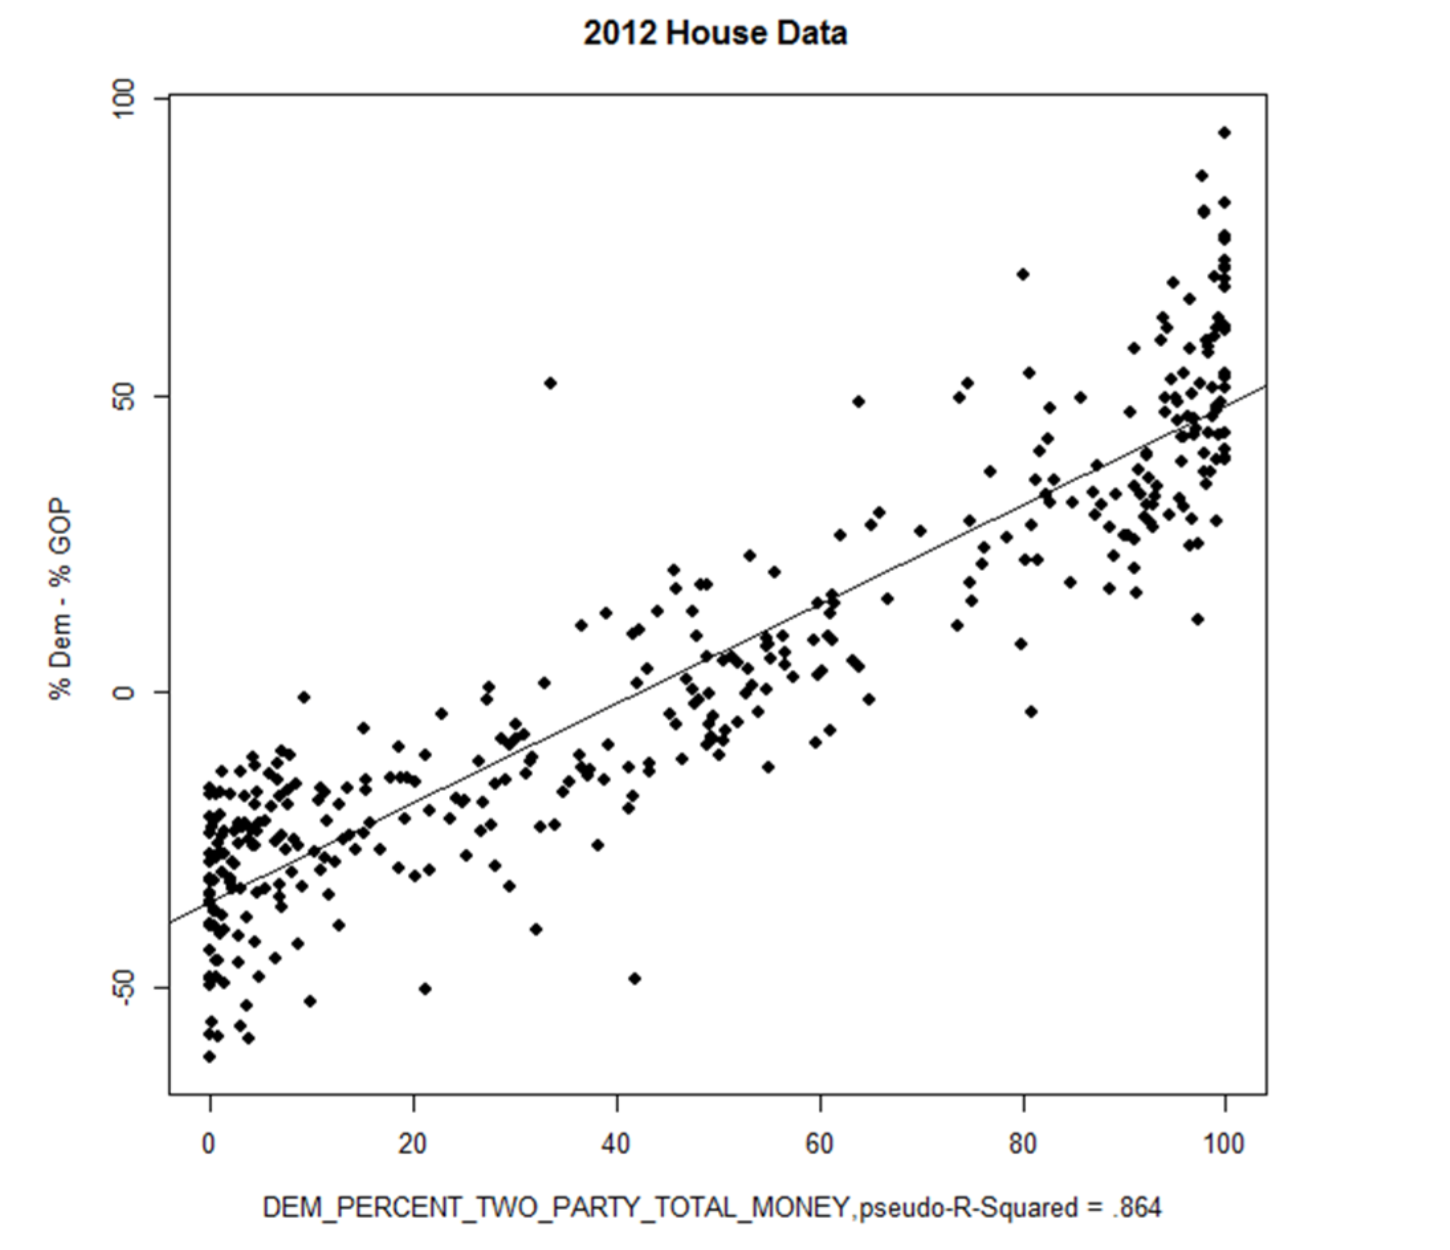 If Money And Voting Outcomes Were Unrelated Then The Dots Representing Individual House Races In 2012 Would Betered All Over The Square